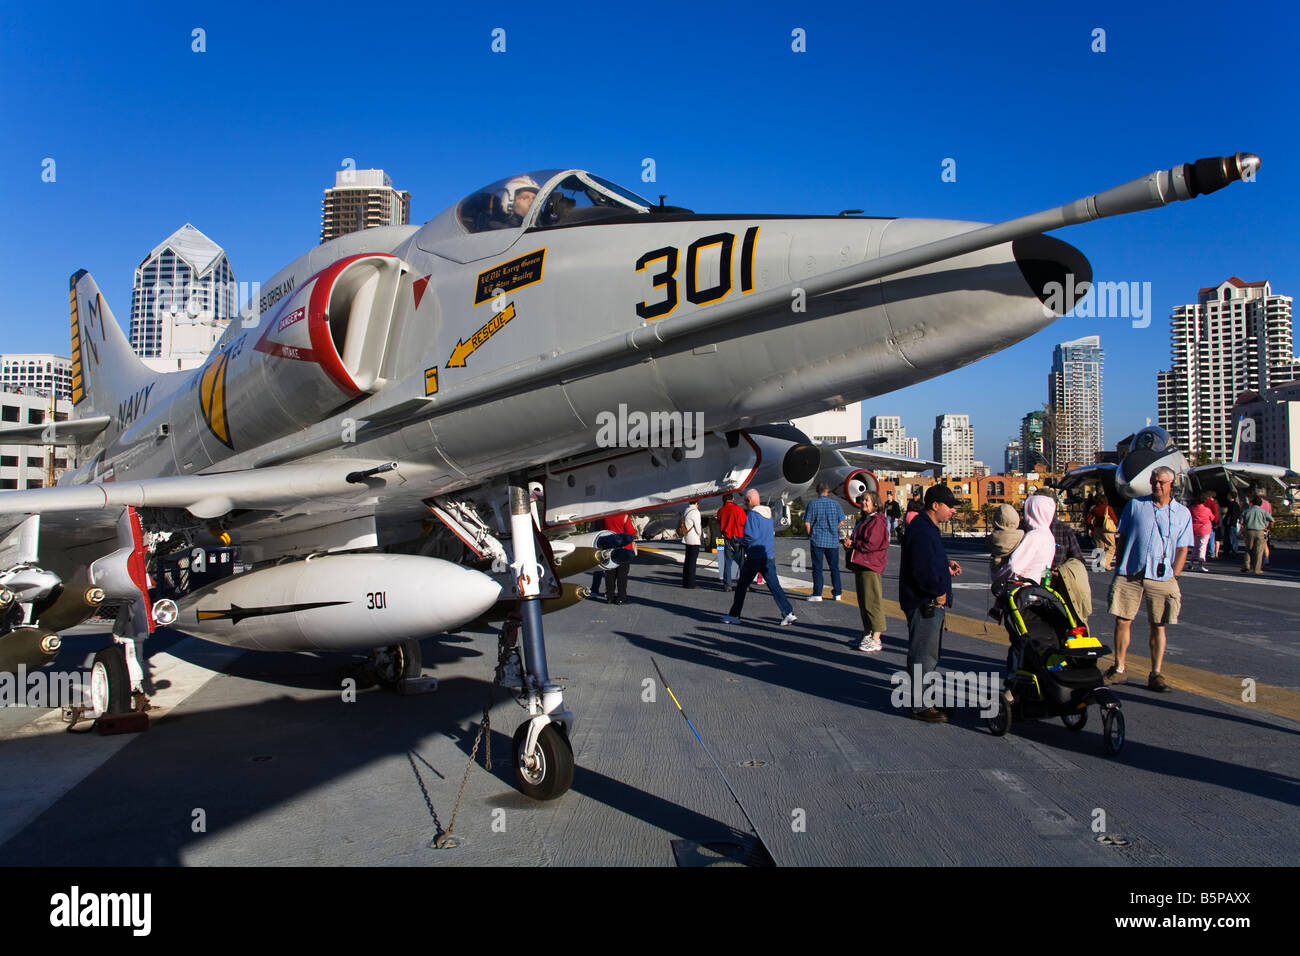 Midway Aircraft Carrier Stock Photos Midway Aircraft Carrier Stock Images Alamy